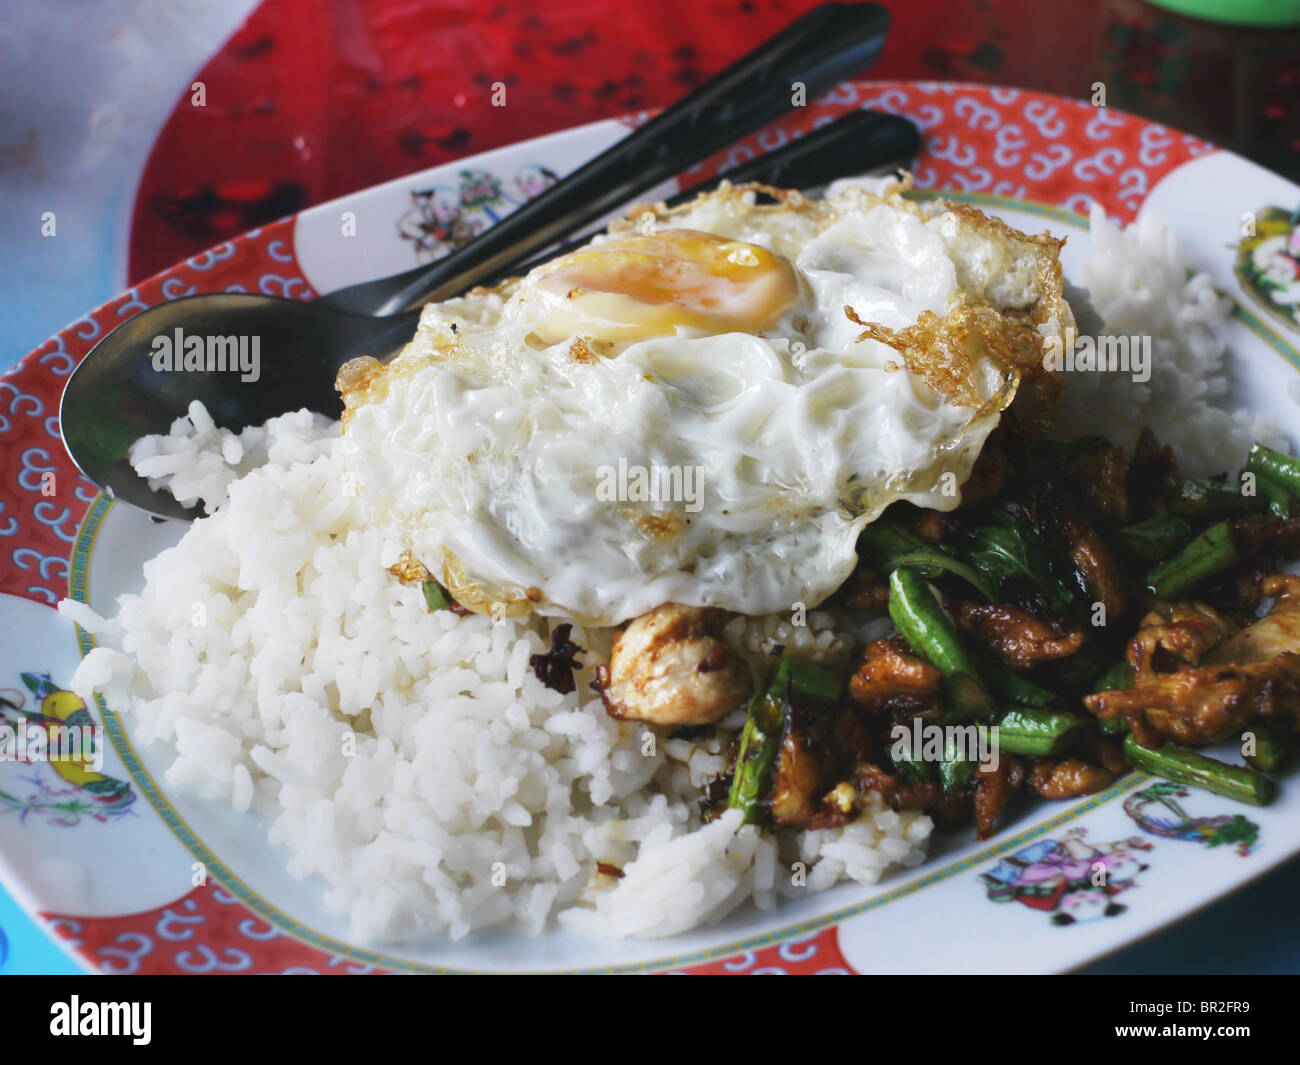 Thai Food, Pad Krapao gai avec poulet, basilic, piment, riz et un œuf frit Photo Stock